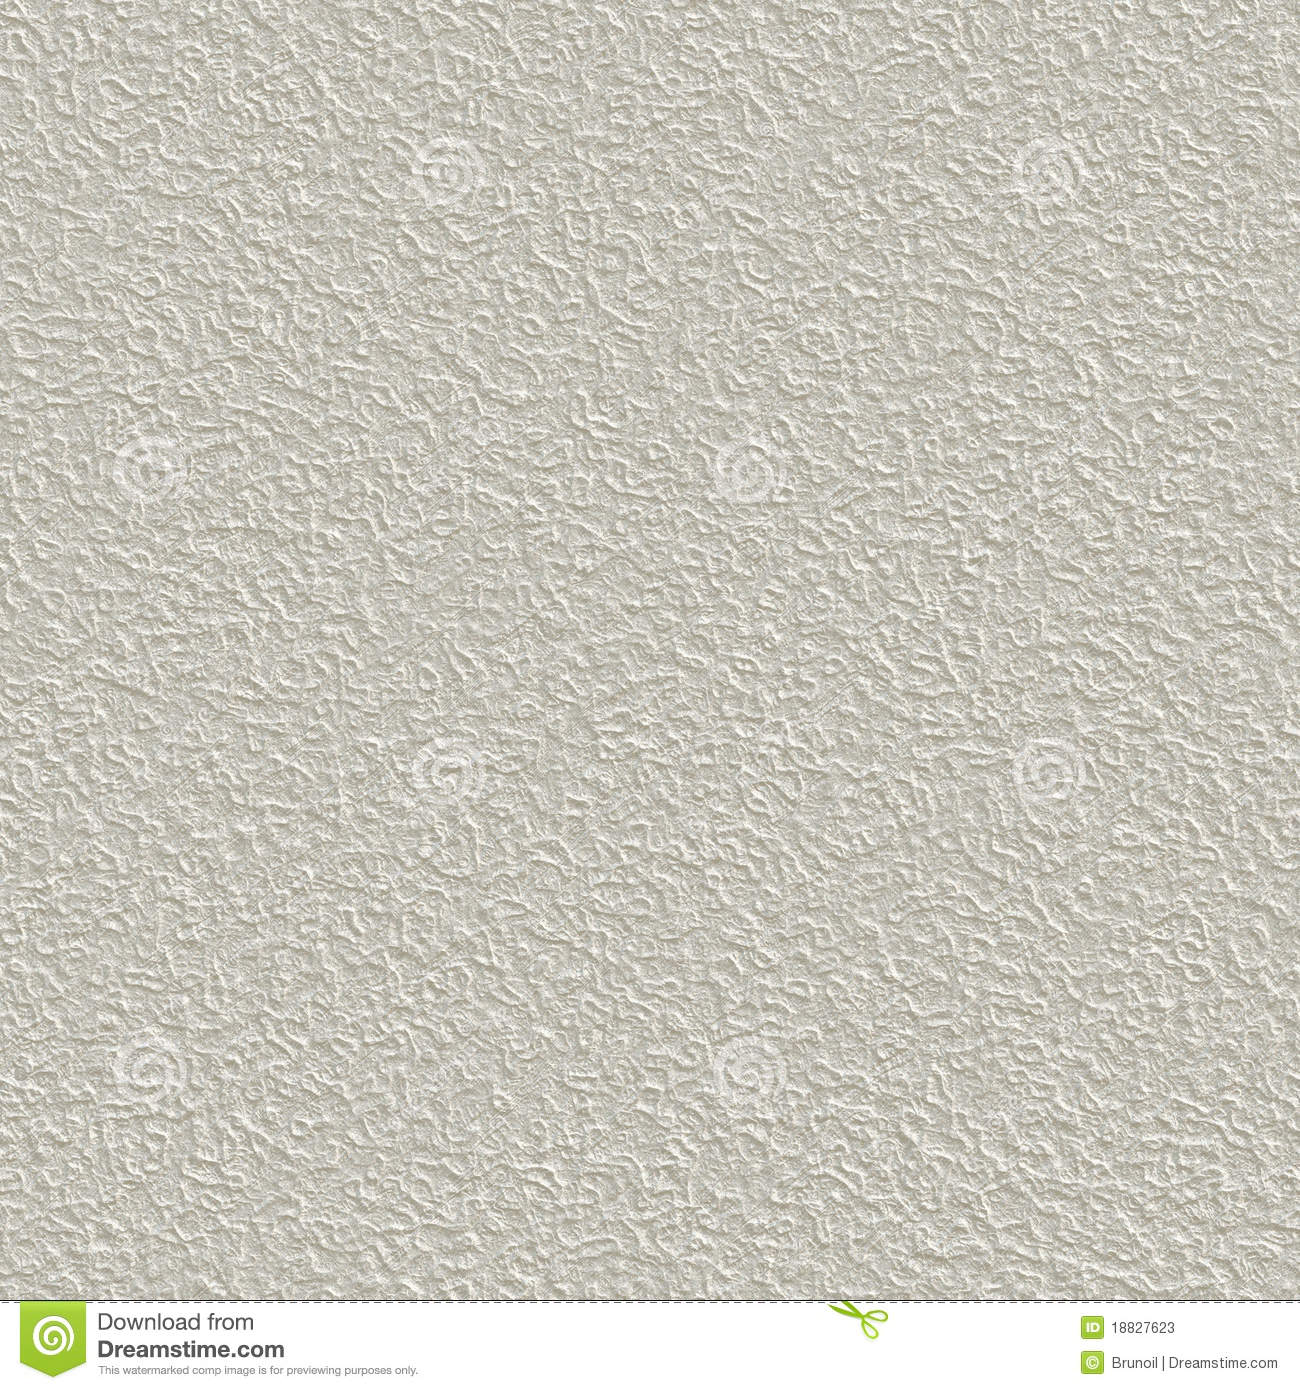 Wall paint texture seamless - Painted Stucco Seamless Pattern